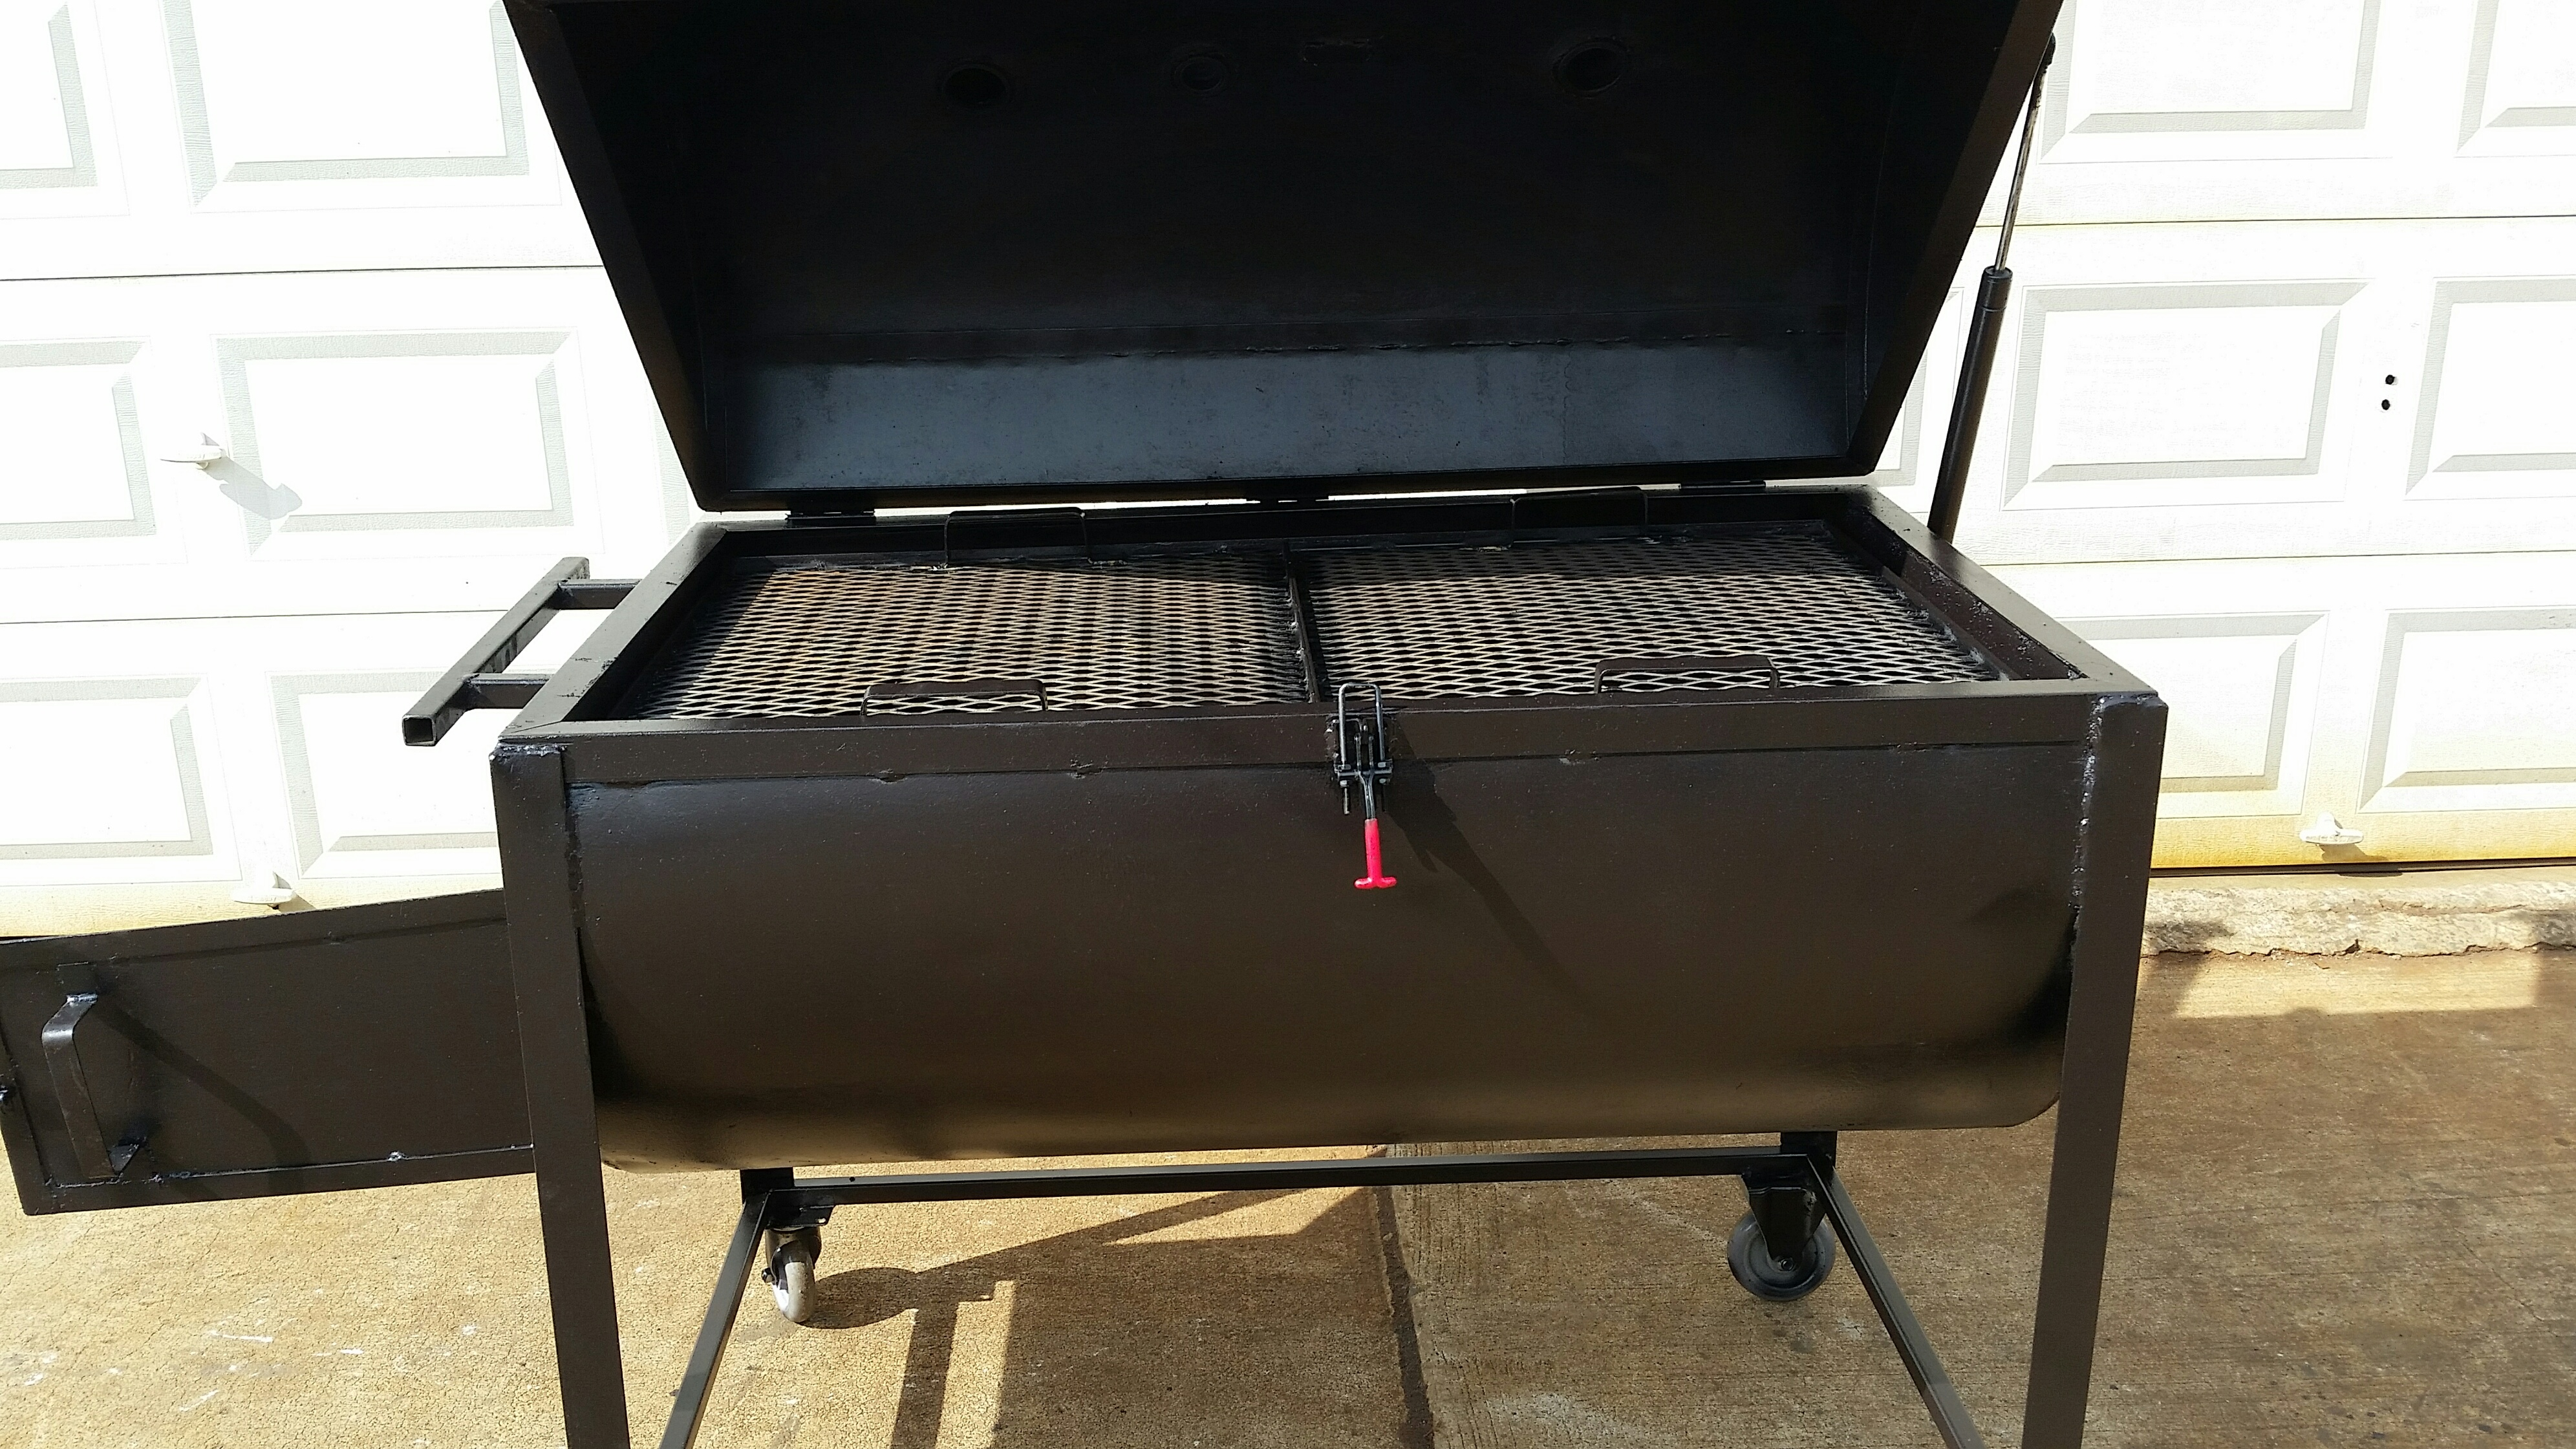 can don blistering electric bbq yardmasterz com food time the george heating that decent t for smaller some grill once element produce best but gf it job heat s take warm expect to grills forman pedestal does a has updated up